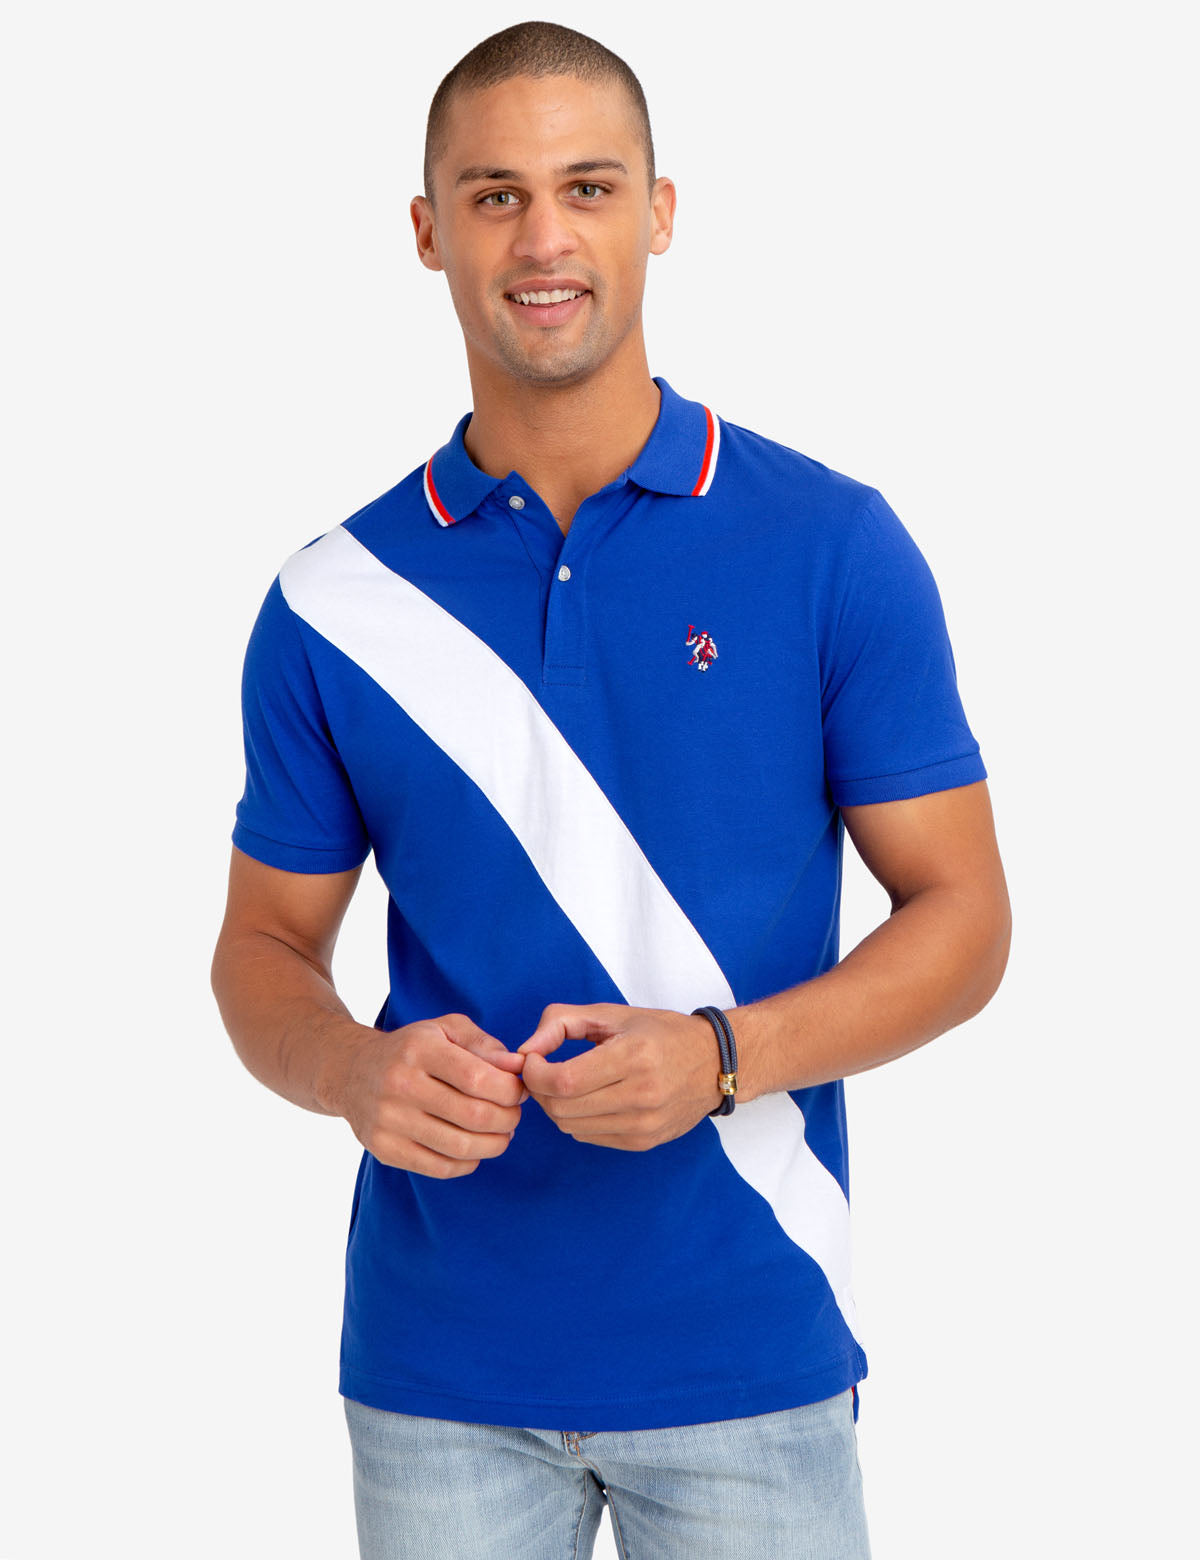 SLIM FIT DIAGONAL STRIPE POLO SHIRT - U.S. Polo Assn.